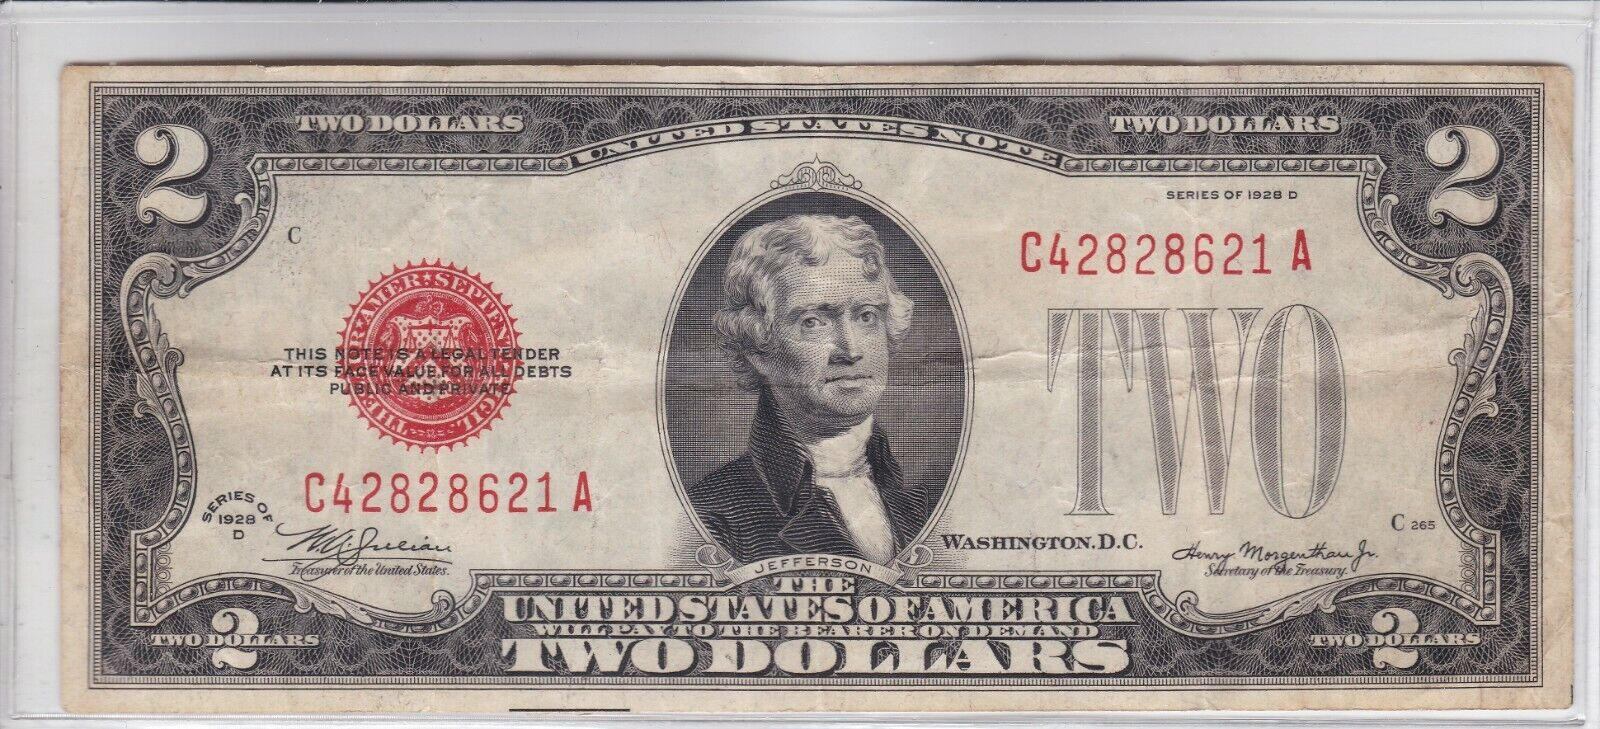 VINTAGE 1928D 2 UNITED STATES NOTE TWO DOLLAR BILL JEFFERSON RED SEAL DOLLARS - $7.00